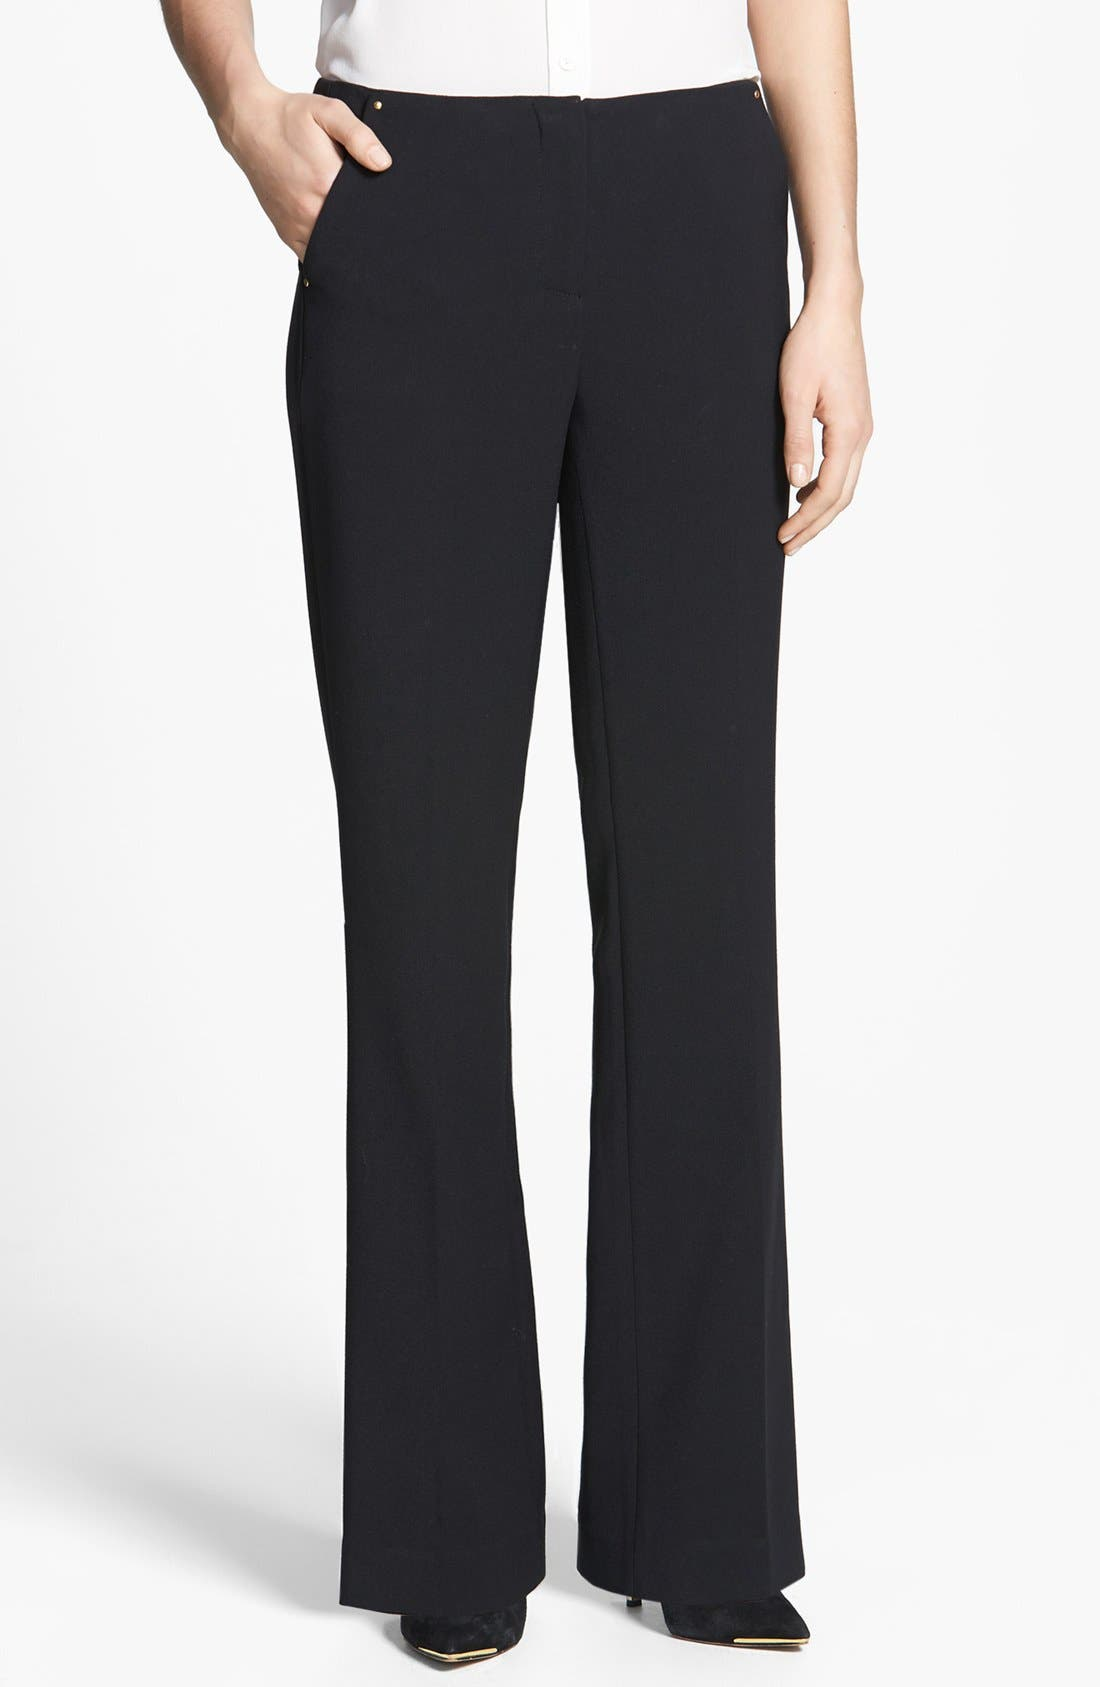 Alternate Image 1 Selected - Anne Klein Flare Leg Pants